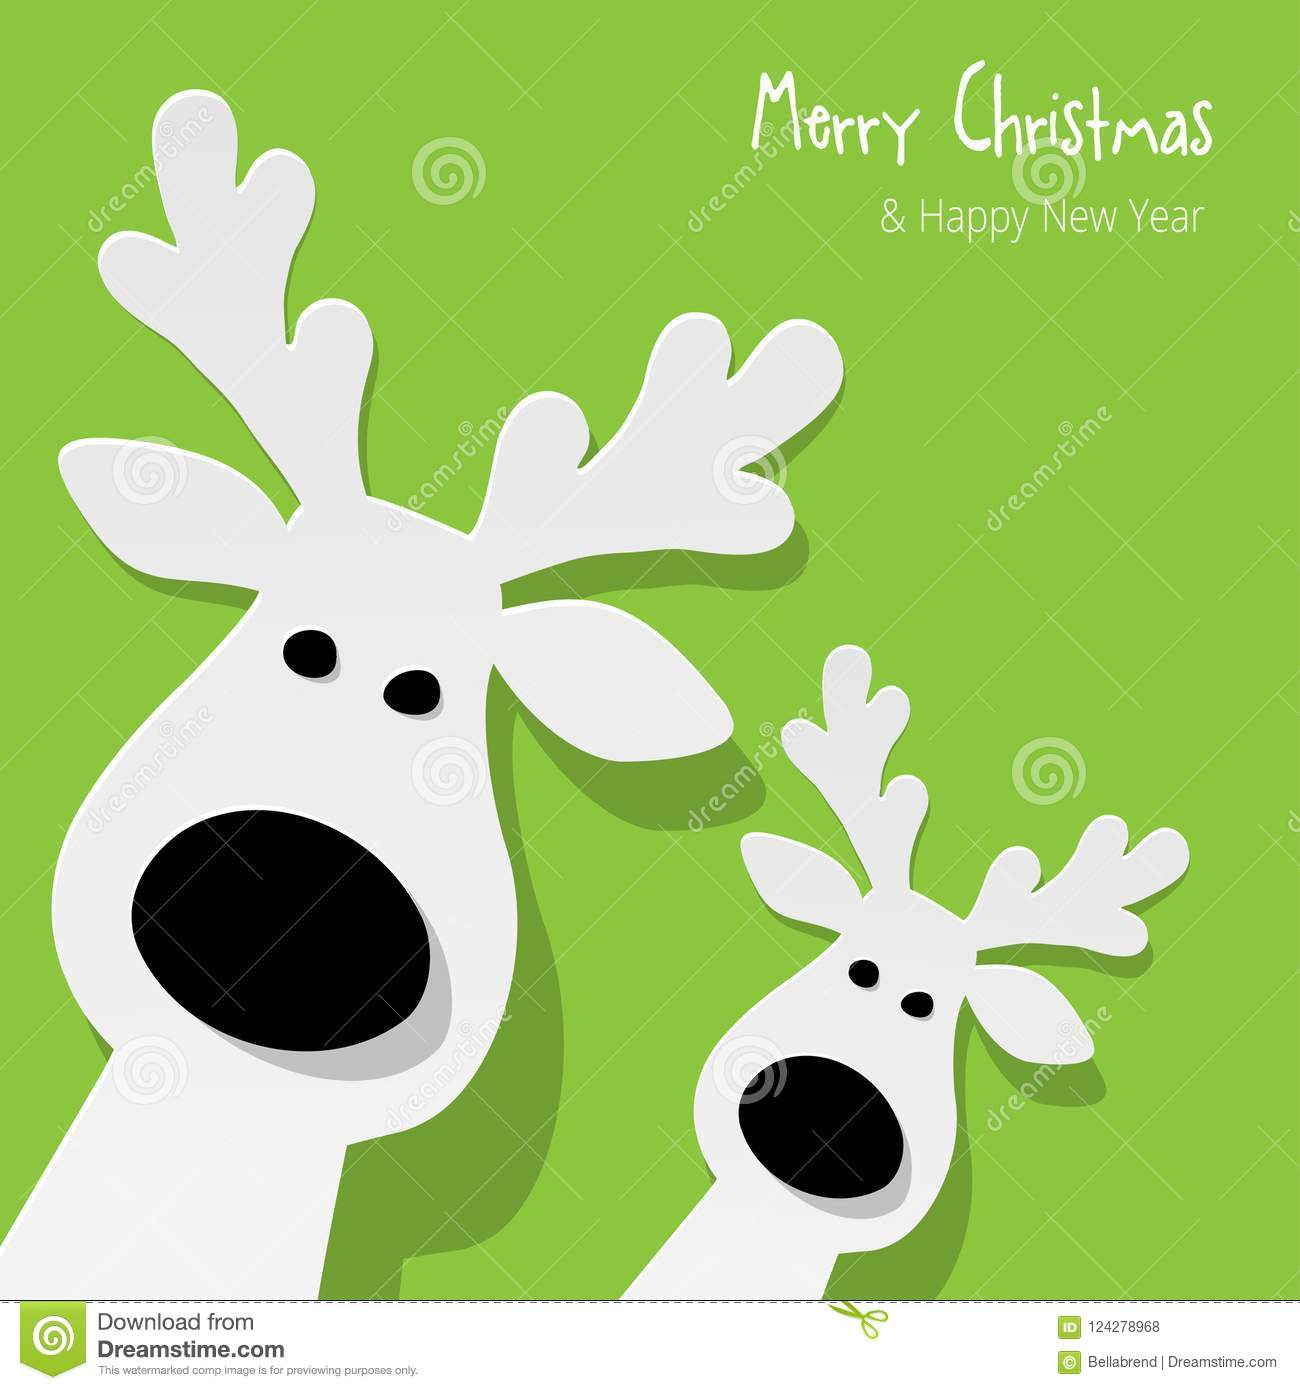 Christmas two Reindeers white on a green background.